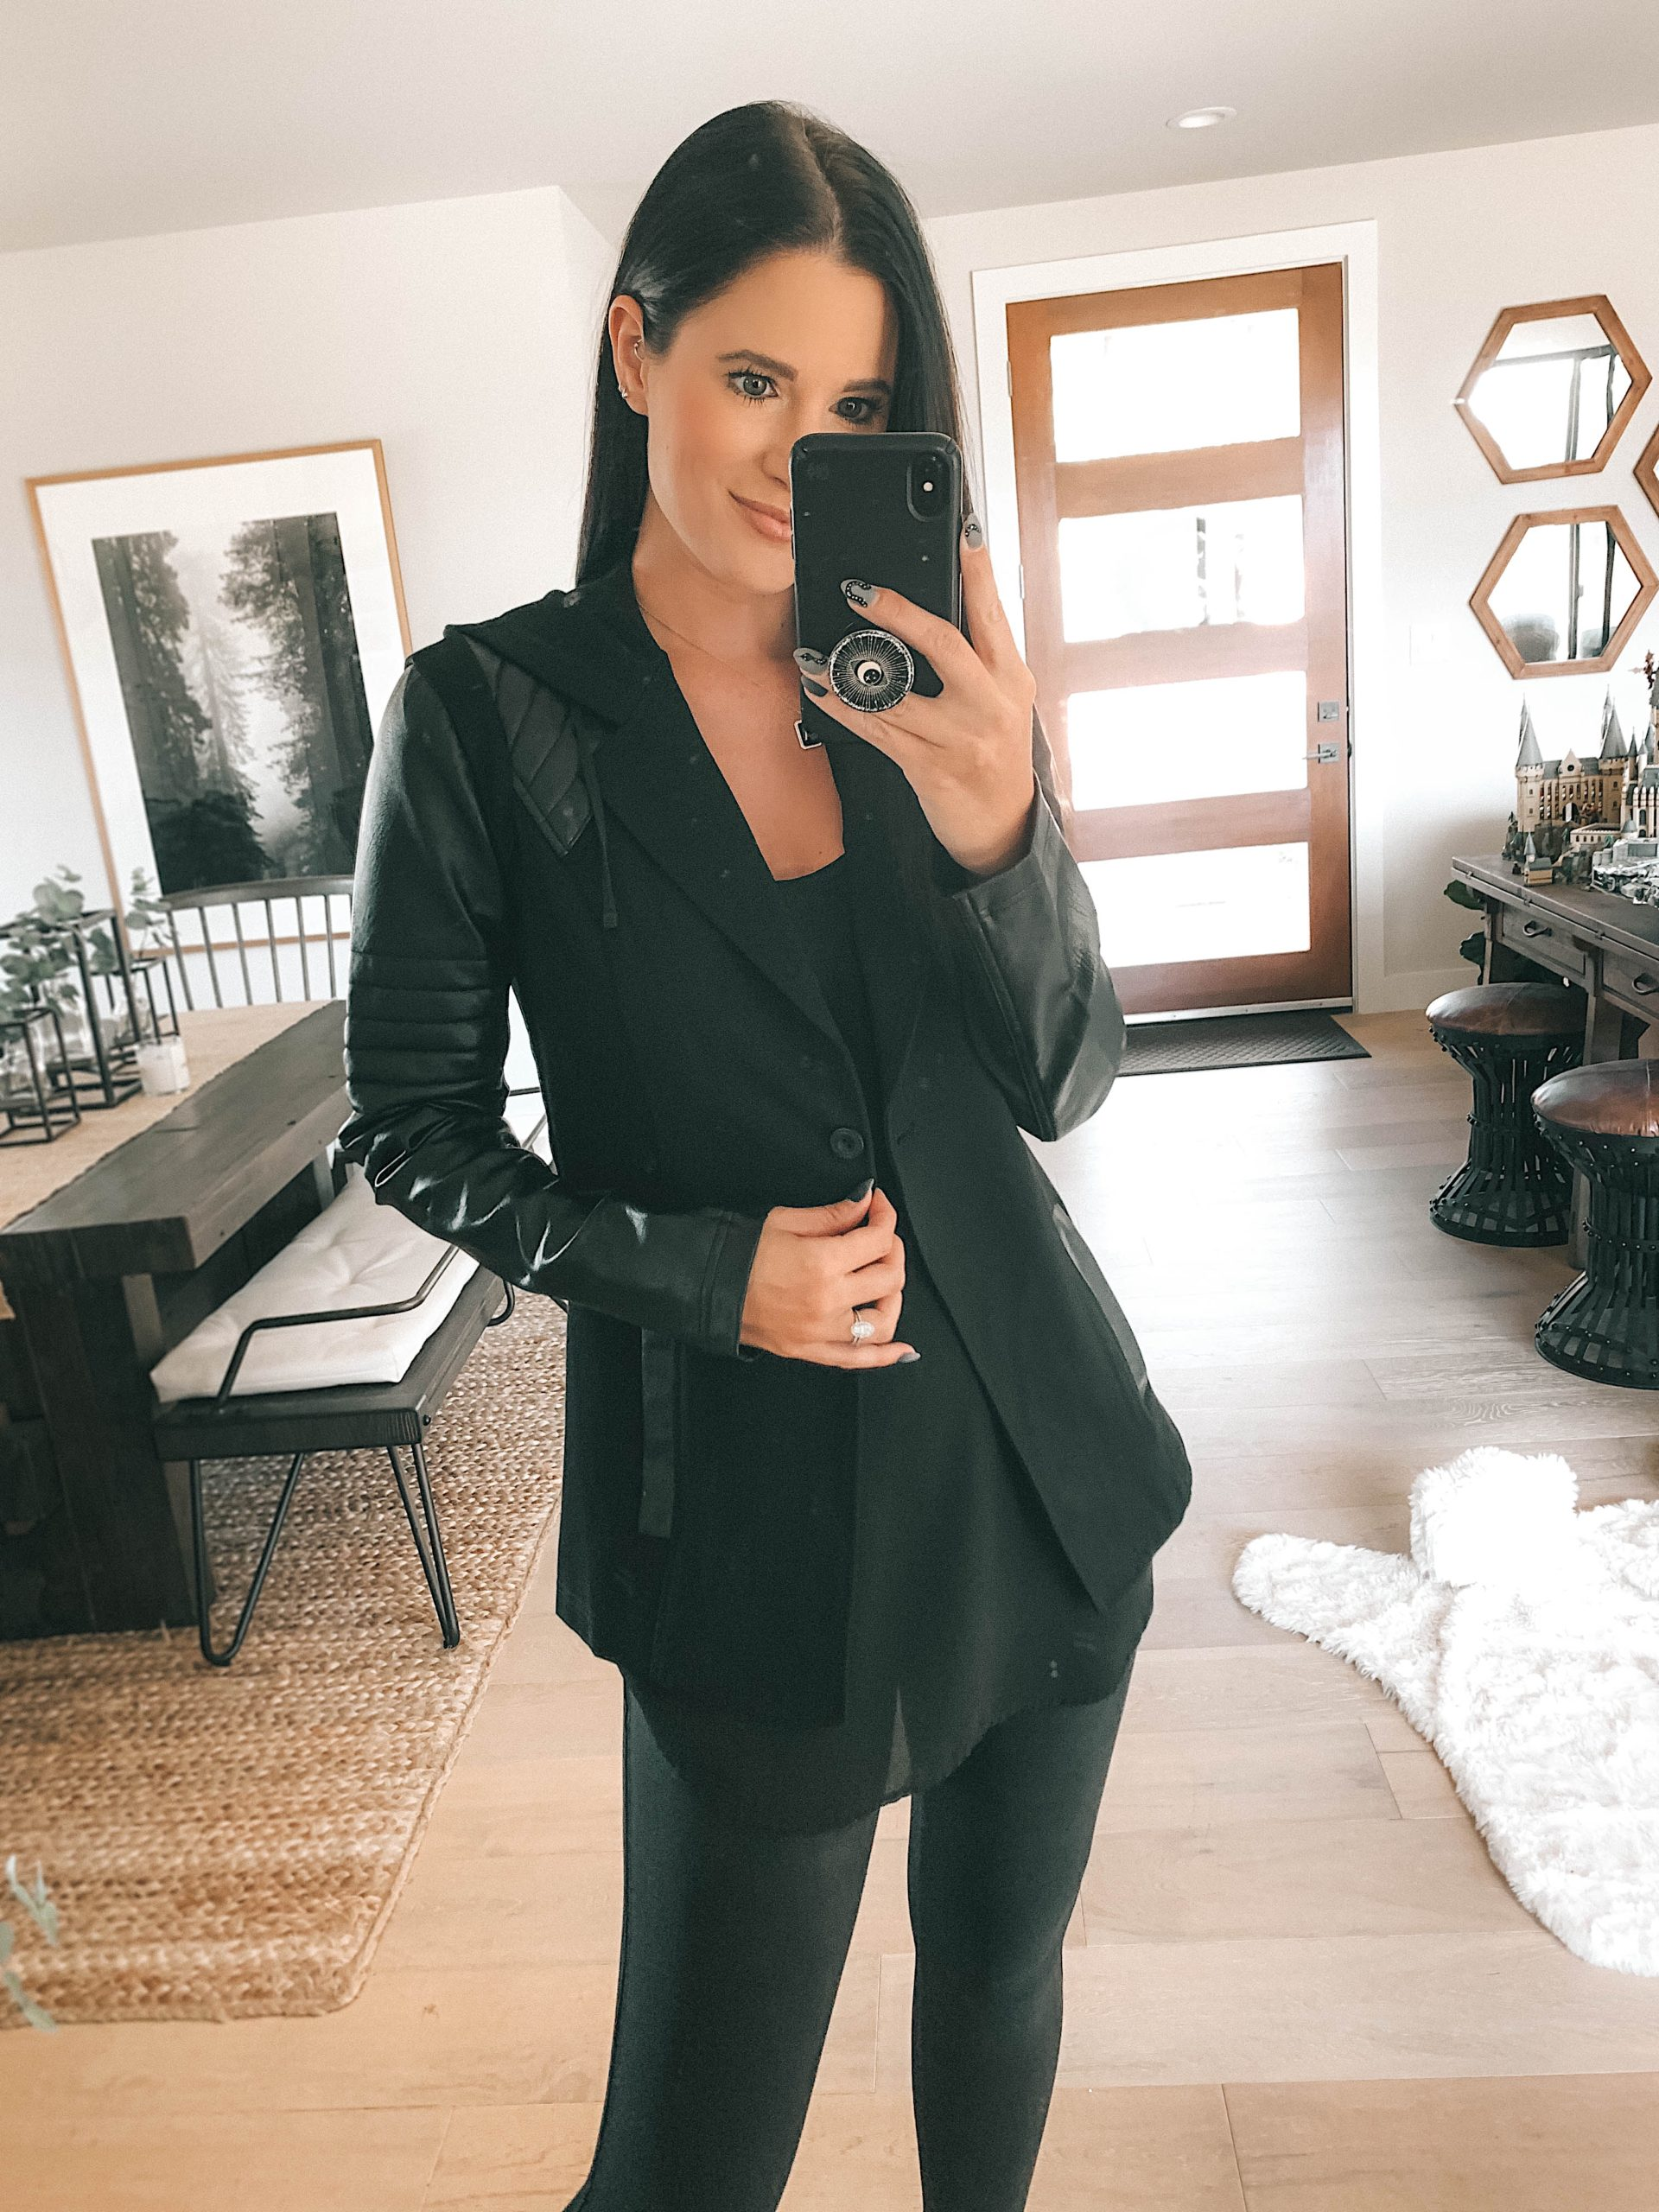 Nordstrom Anniversary Sale by popular Austin fashion blog, Dressed to Kill: image of a woman wearing a black jacket, black top and black faux leather leggings.